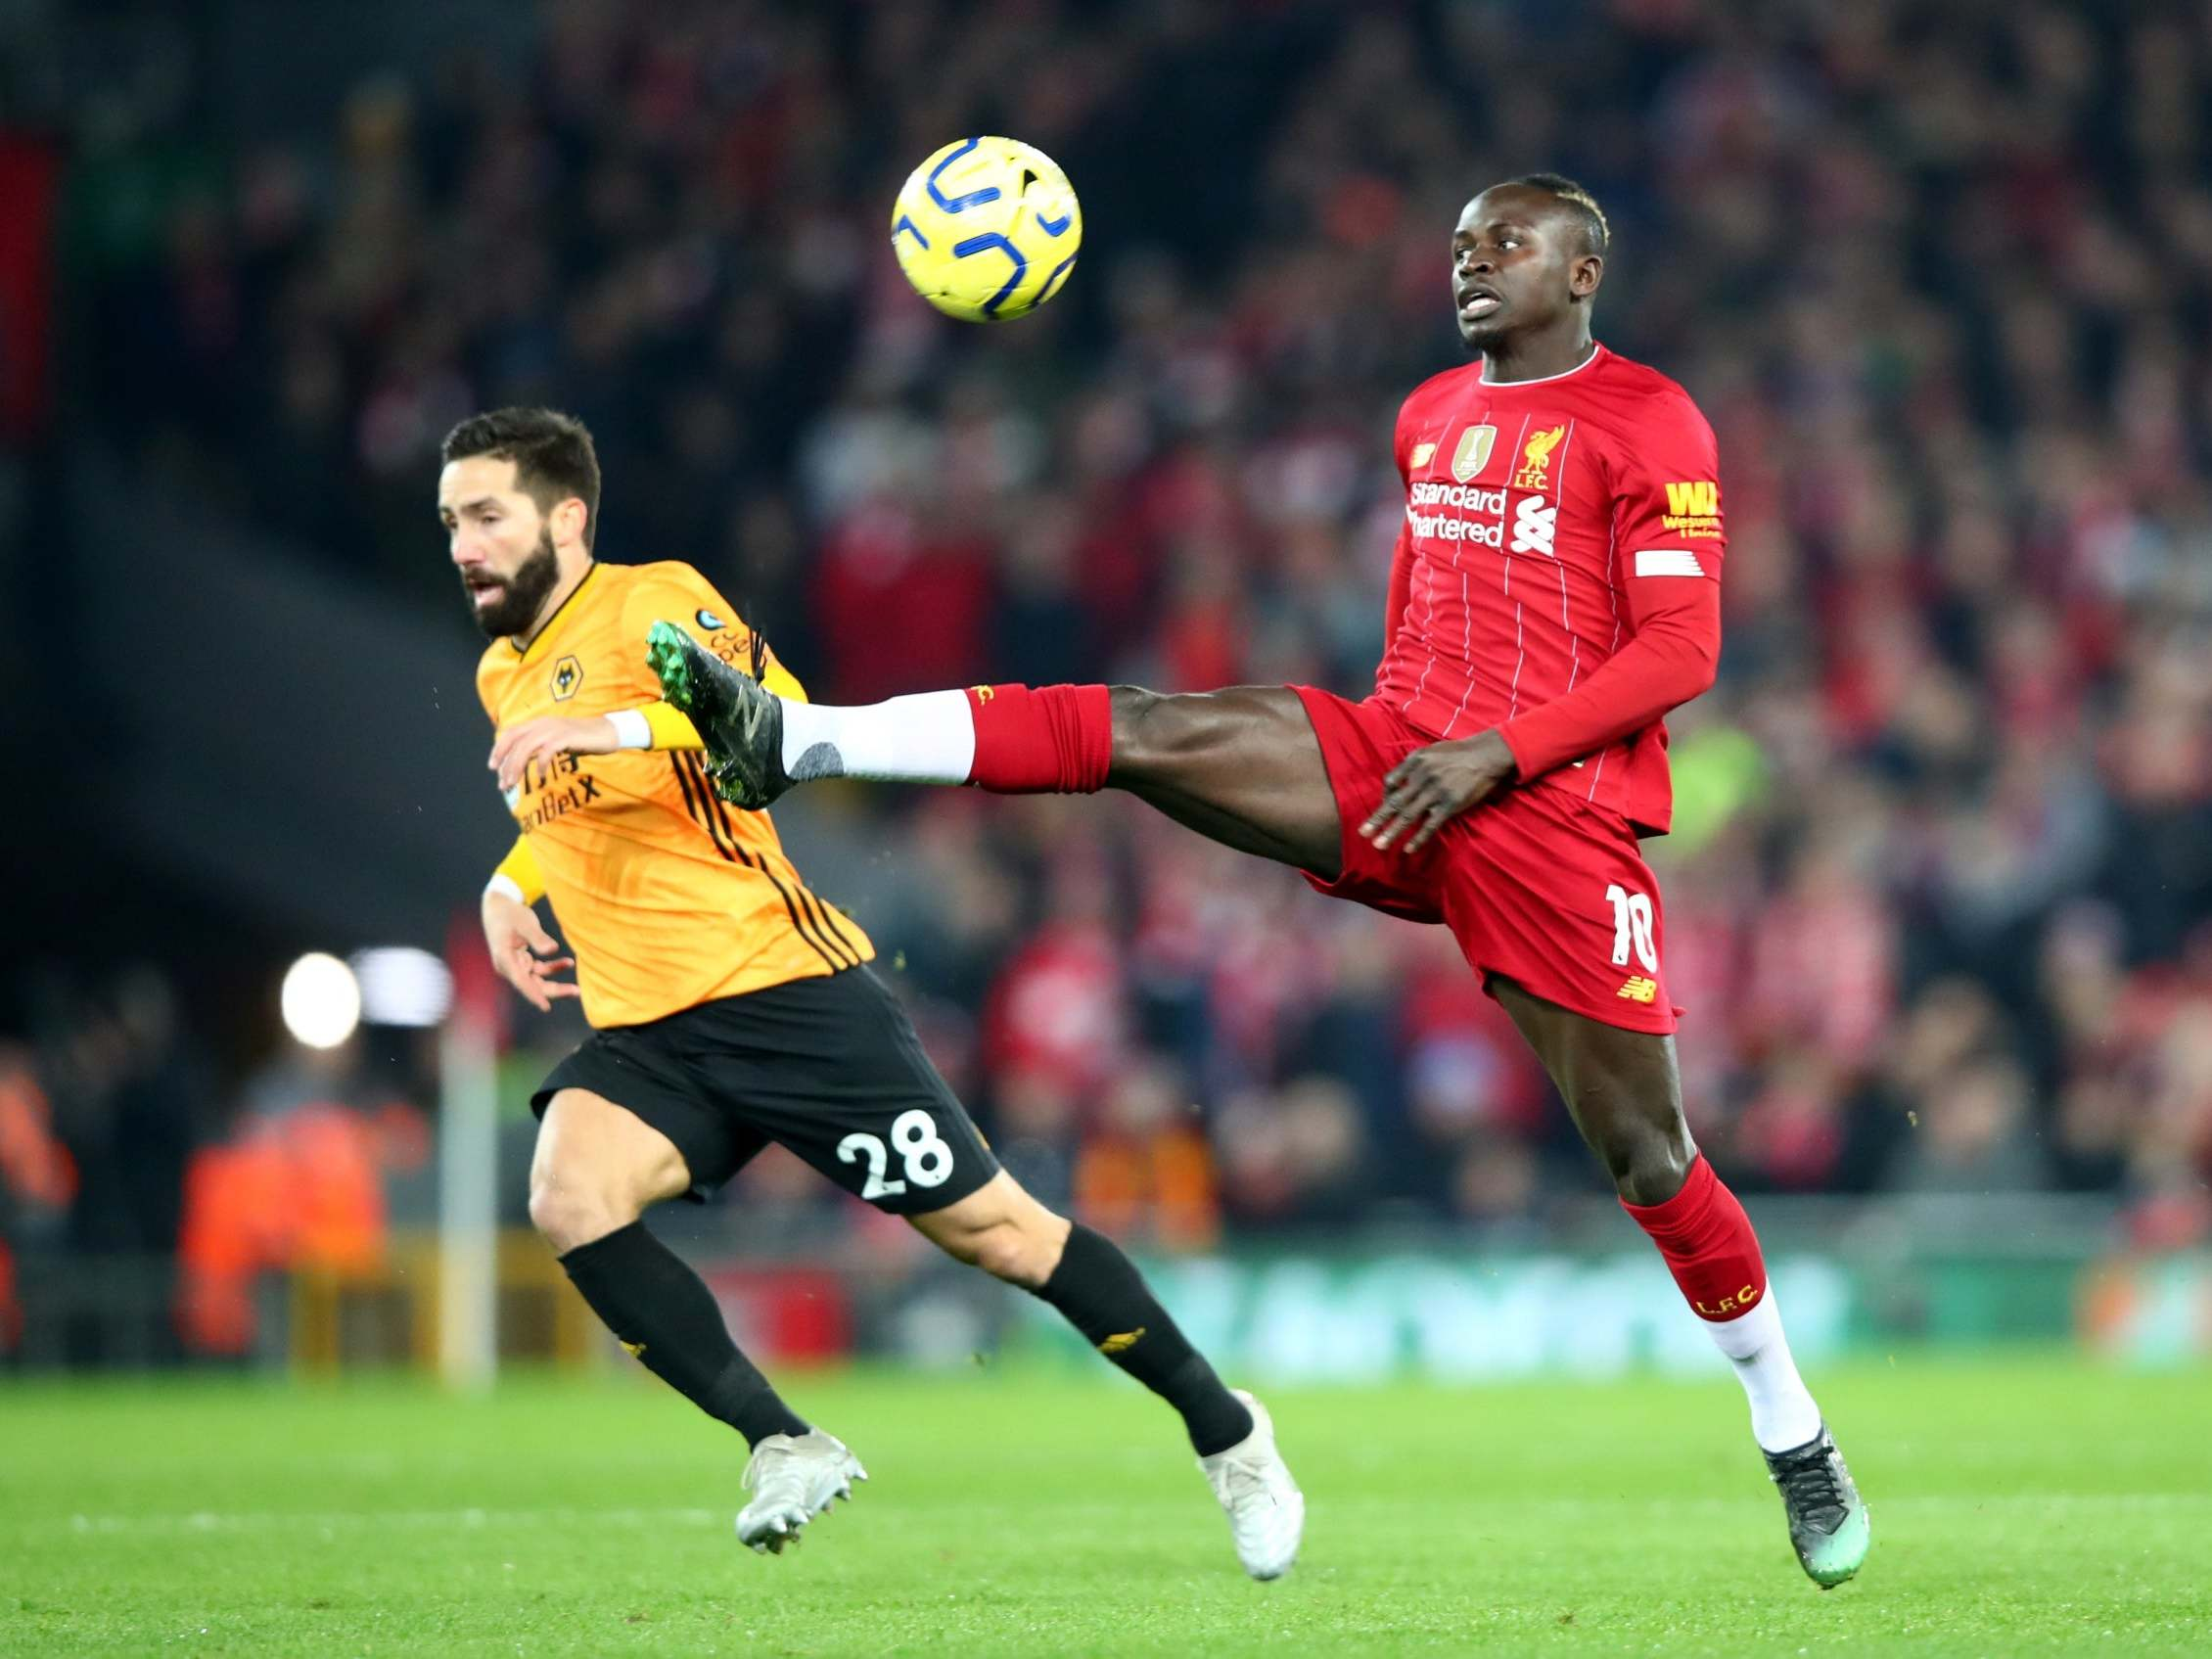 Wolves vs Liverpool prediction: How will Premier League fixture play out tonight?